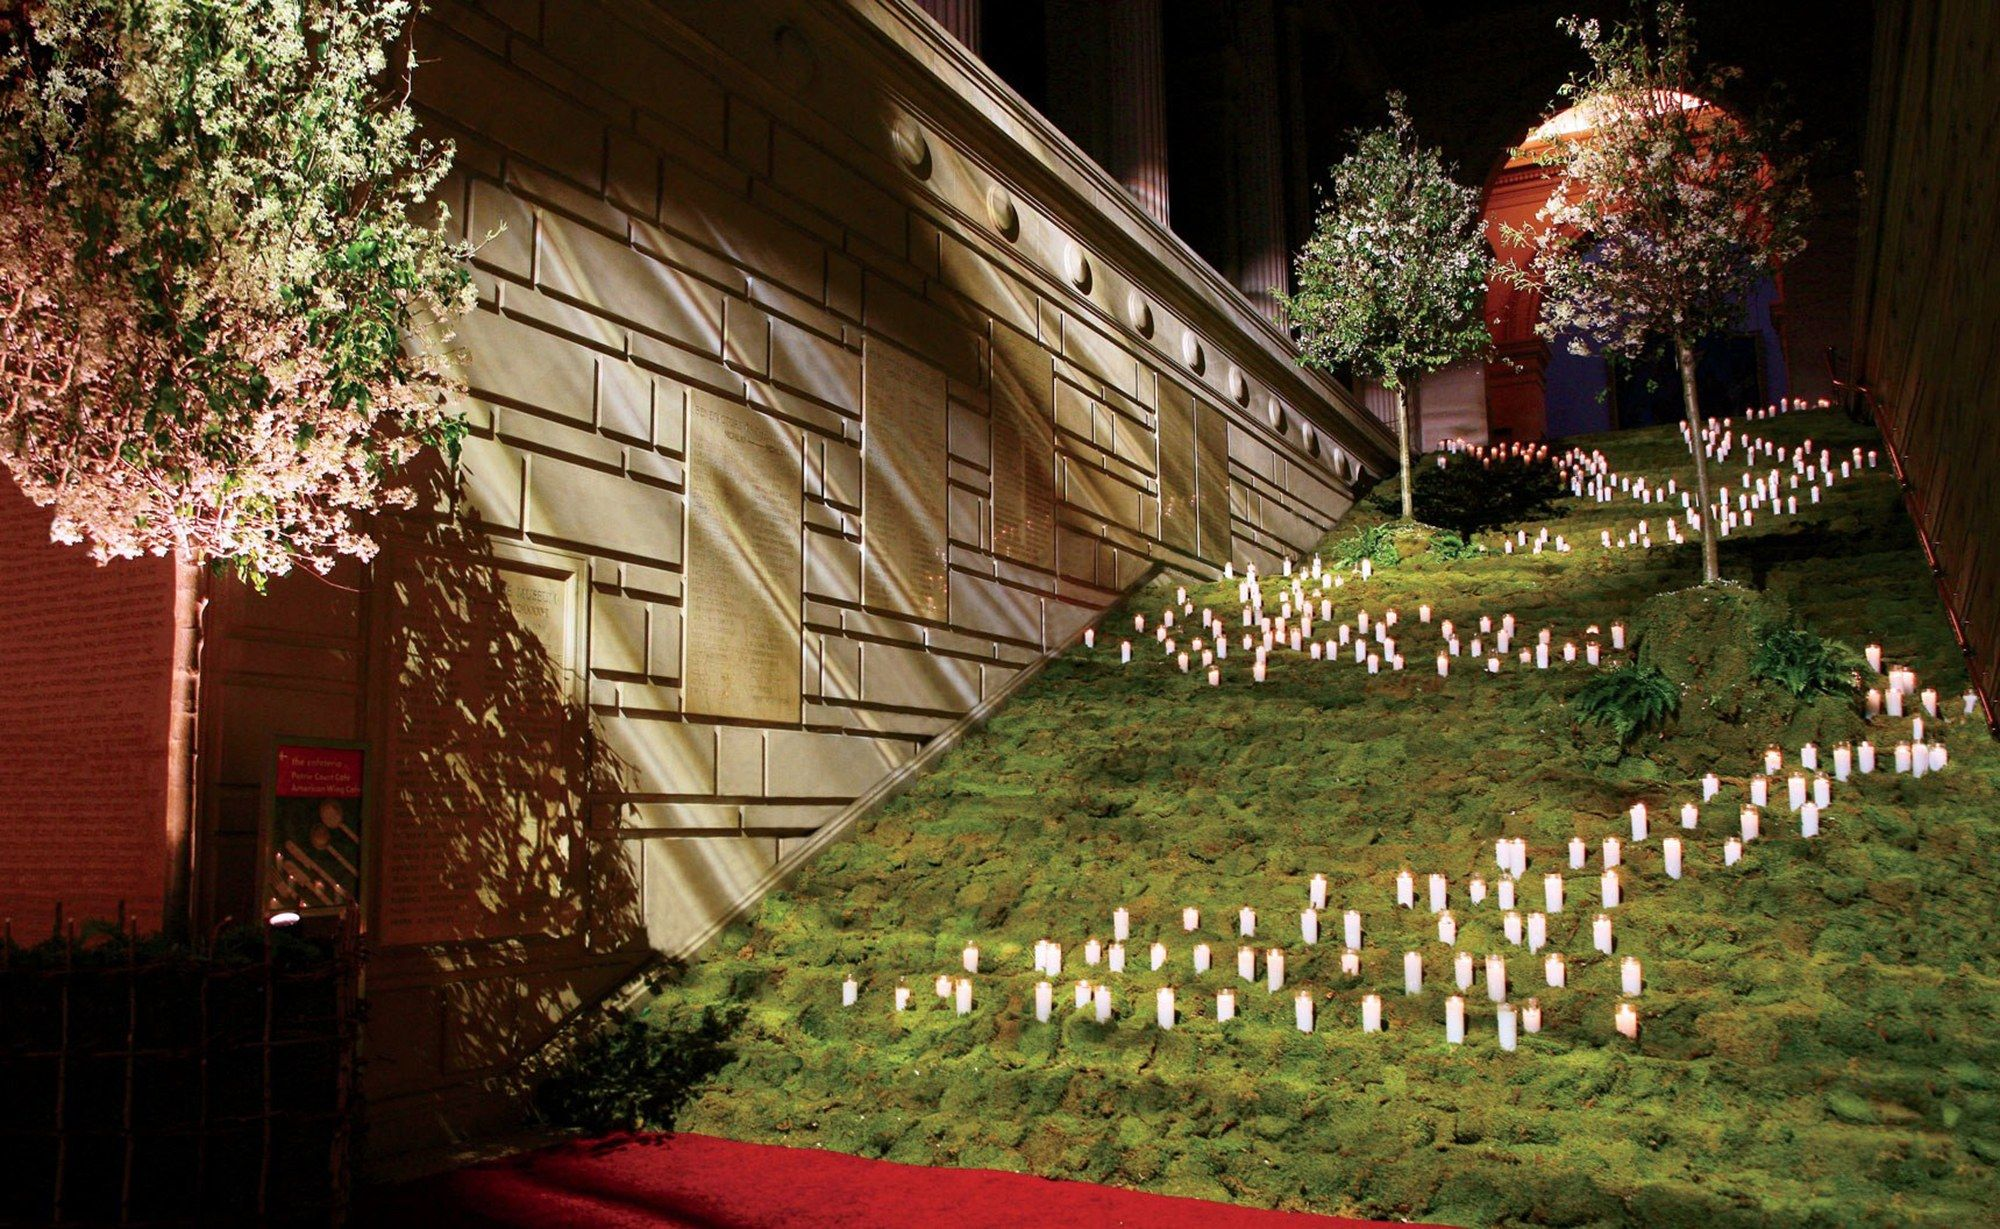 A Grand Entrance Met Gala Decor Throughout The Years Gala Decorations Party Planning 101 Met Gala